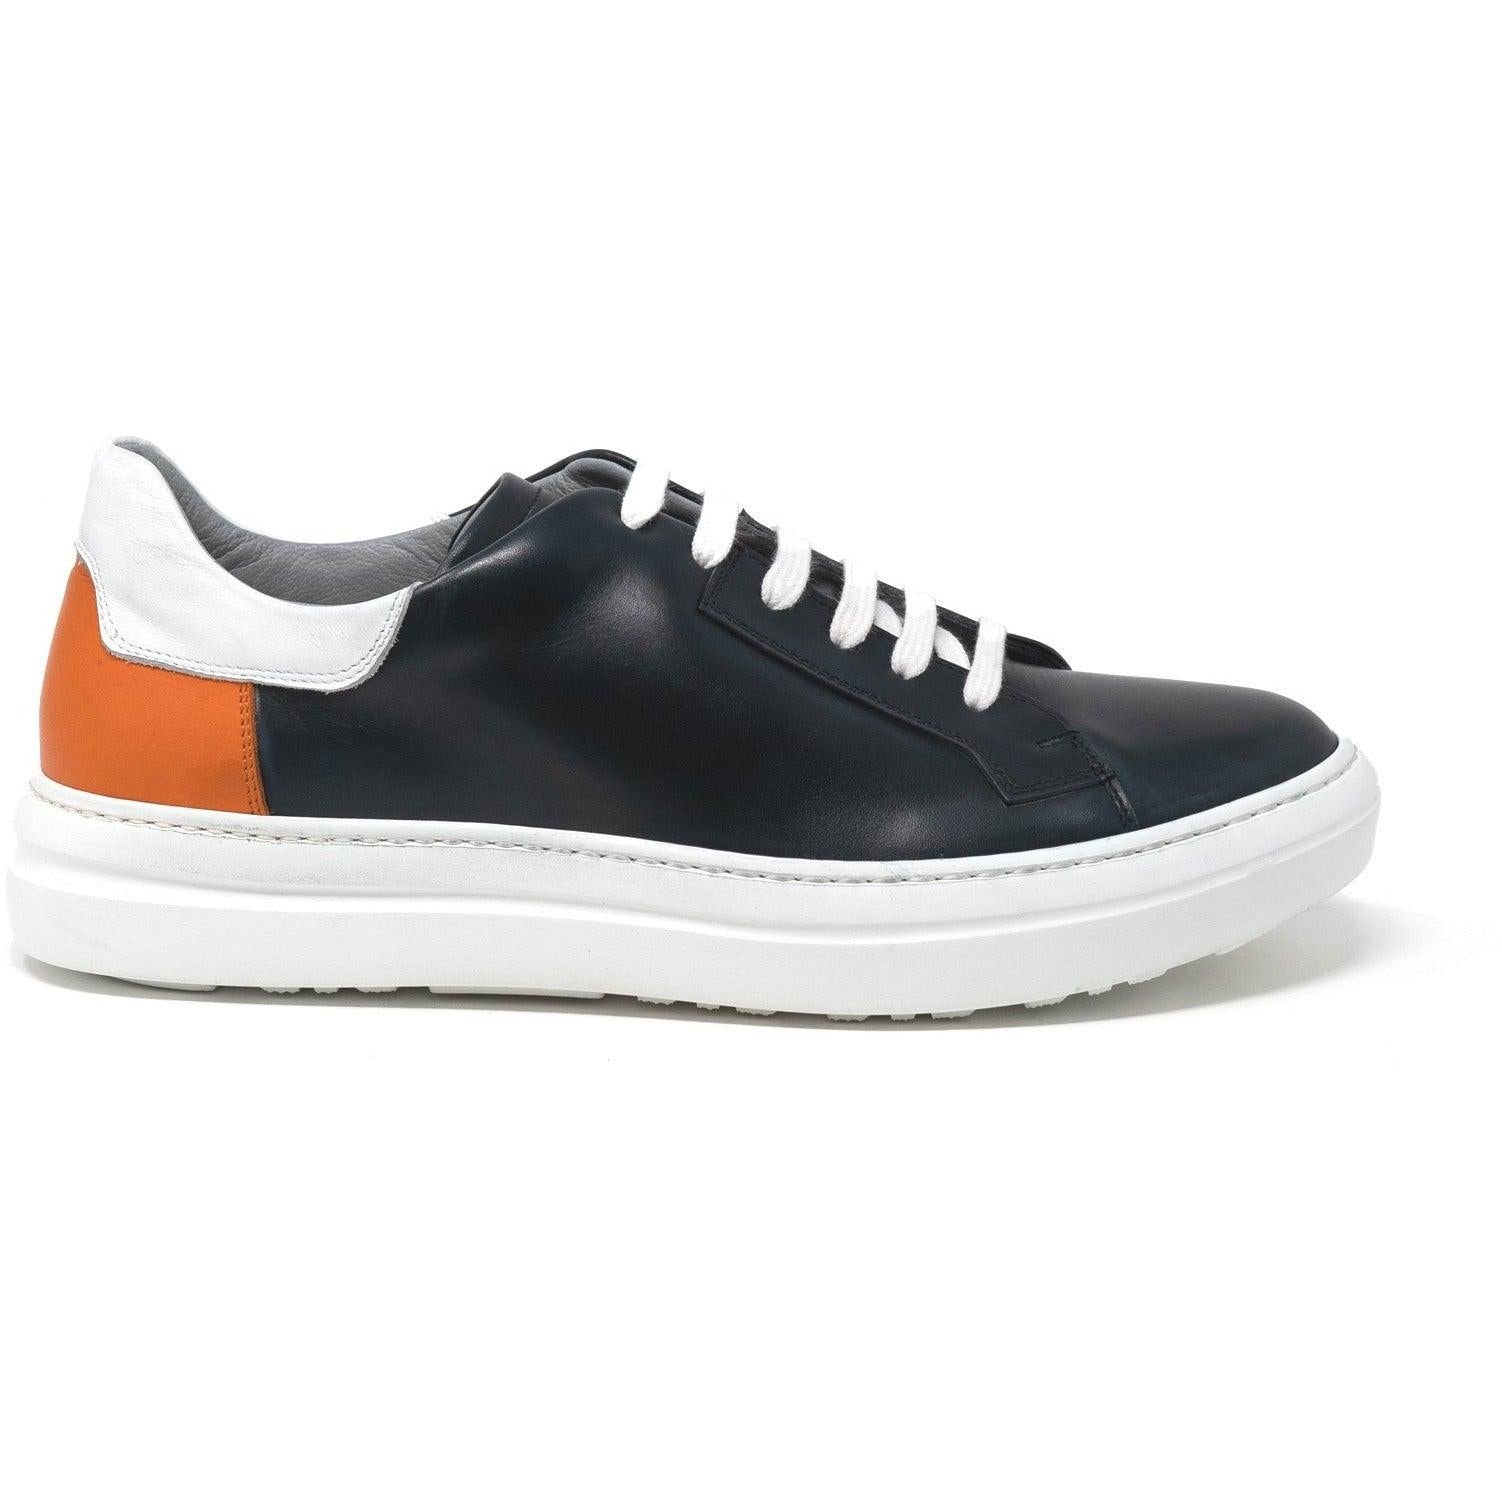 LAN8852 F053 Men Sneakers - New Spring Summer 2020 Collection